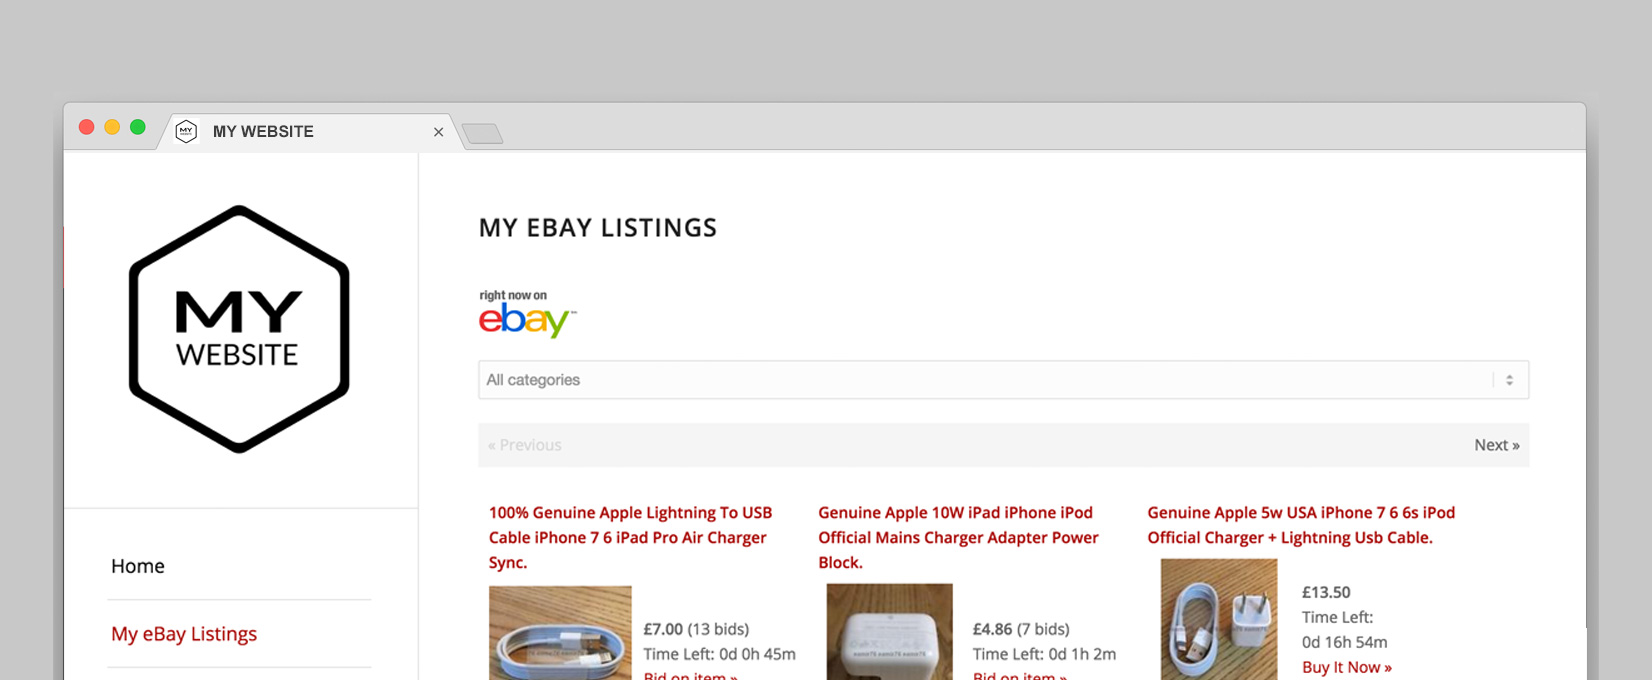 5 Alternative Ways To Promote Ebay Listings Guides Auction Nudge